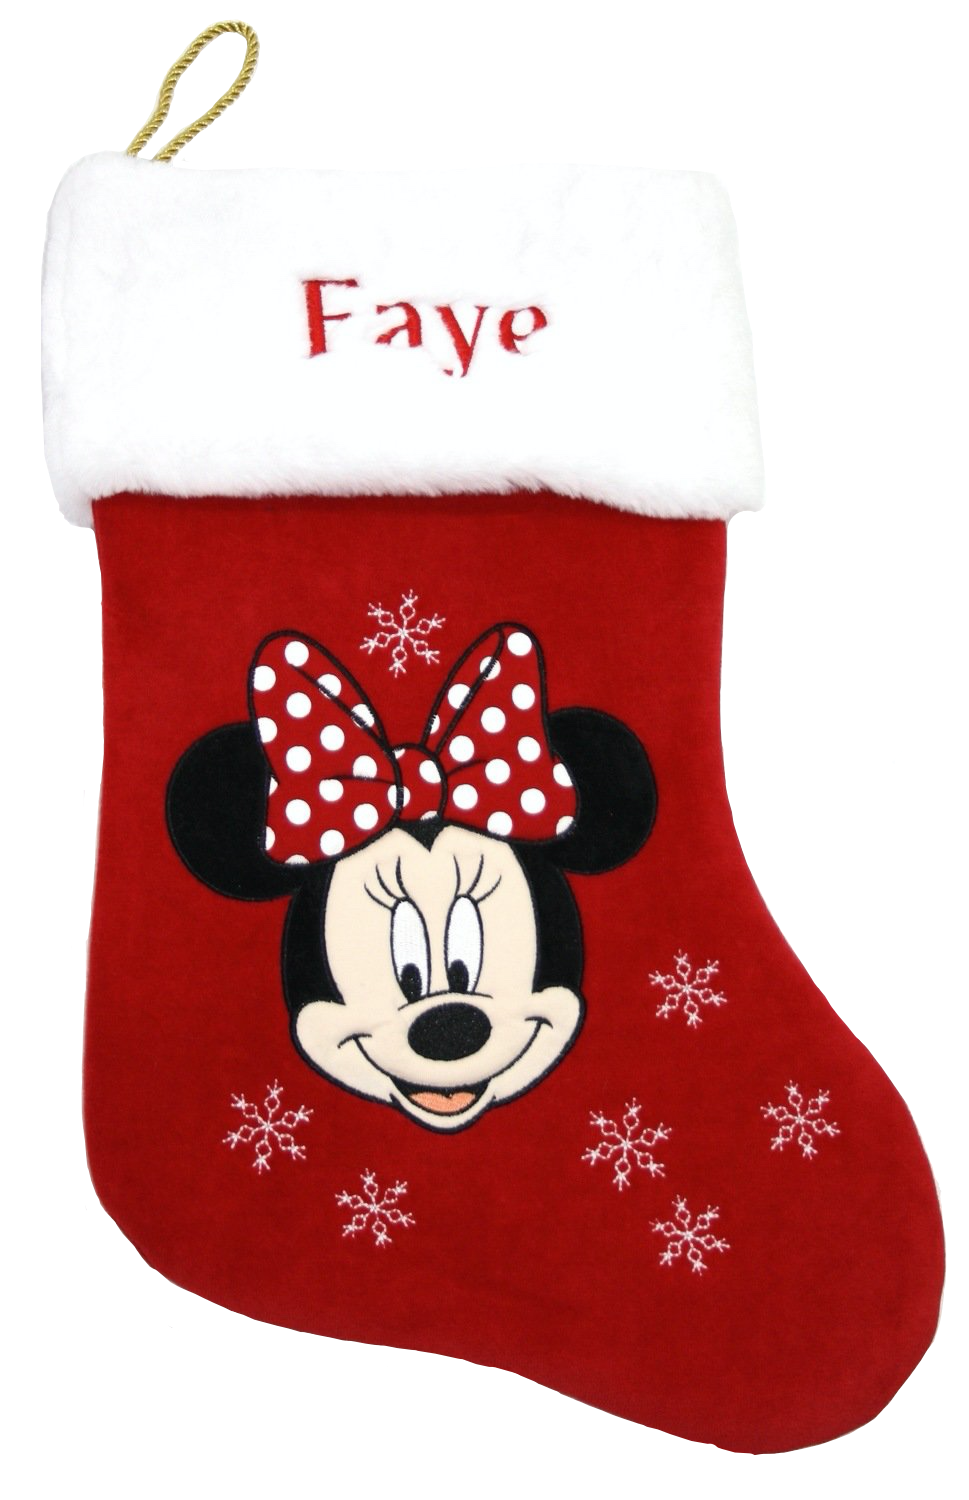 Disney personalised Minnie Mouse Christmas stocking